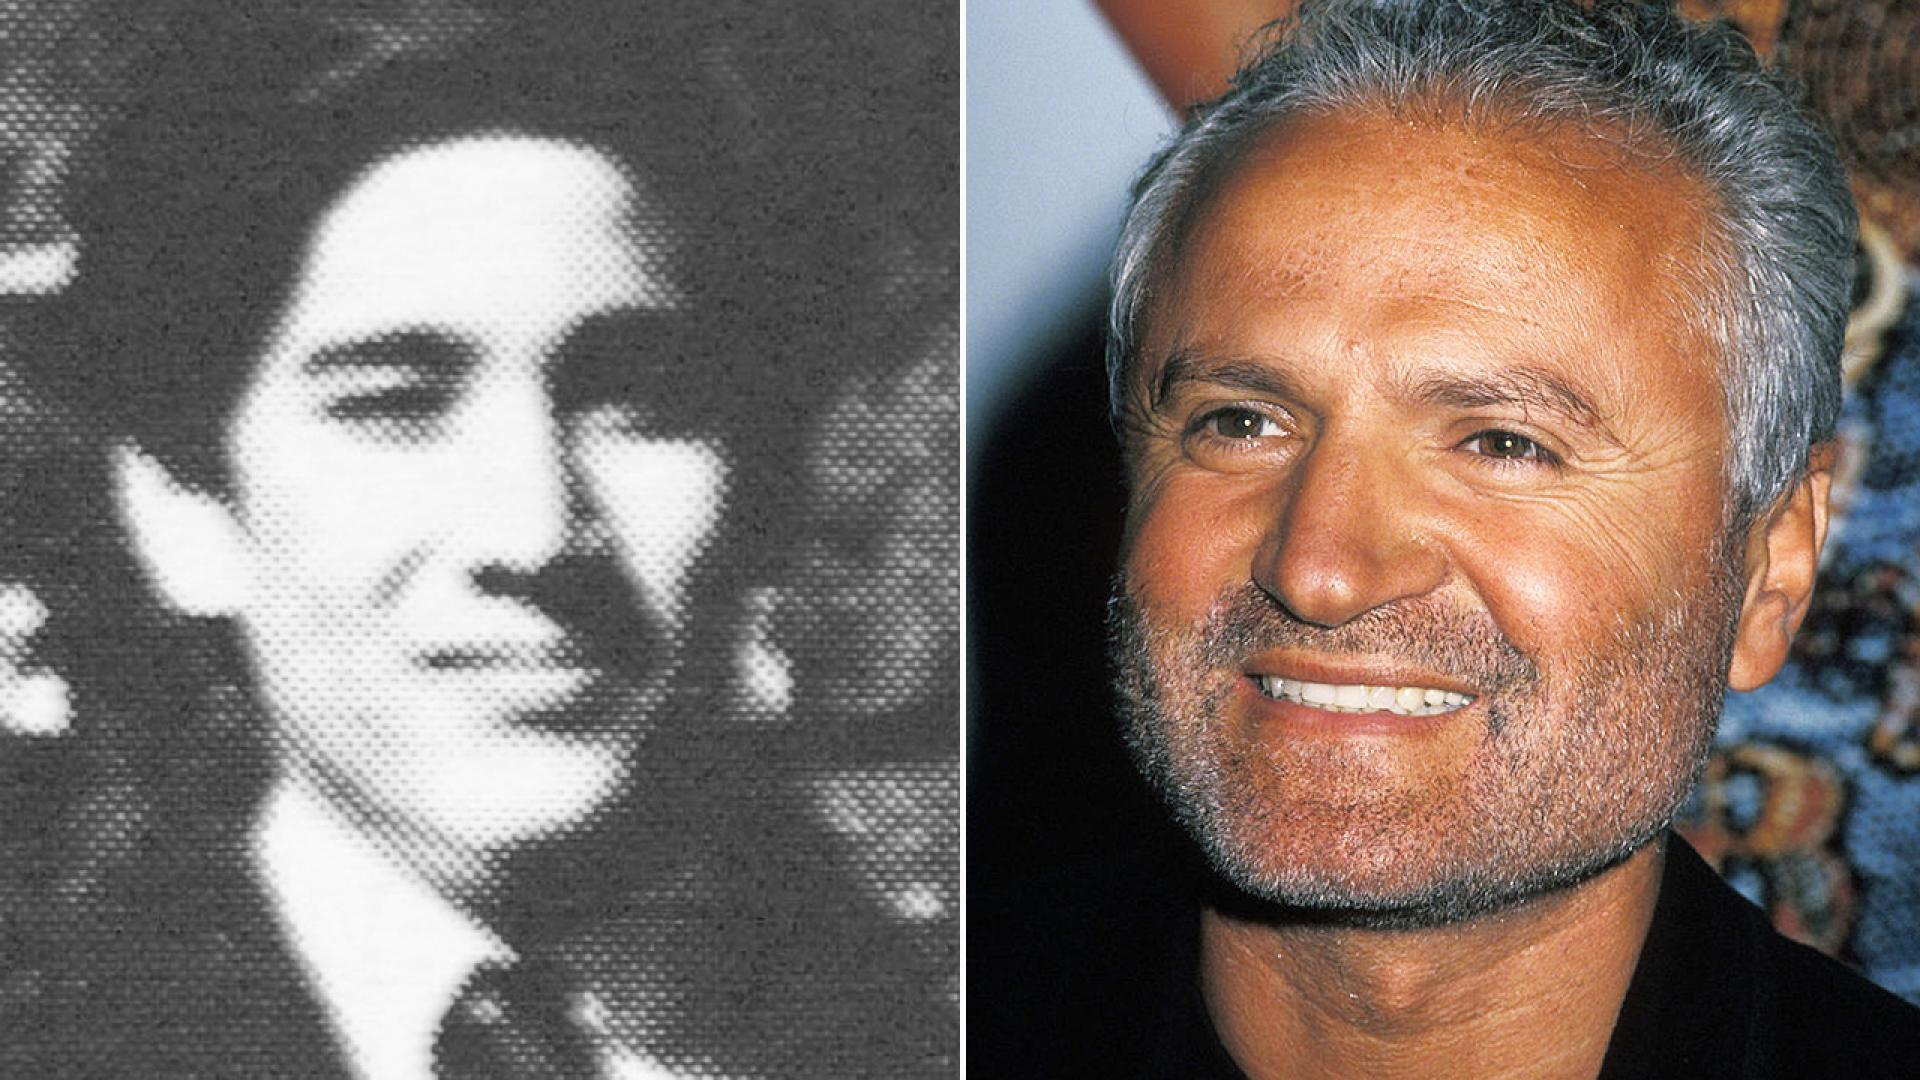 Andrew Cunanan began his killing spree on April 27, 1997 and eventually went on to murder Italian designer Gianni Versace in front of his Miami Beach mansion.